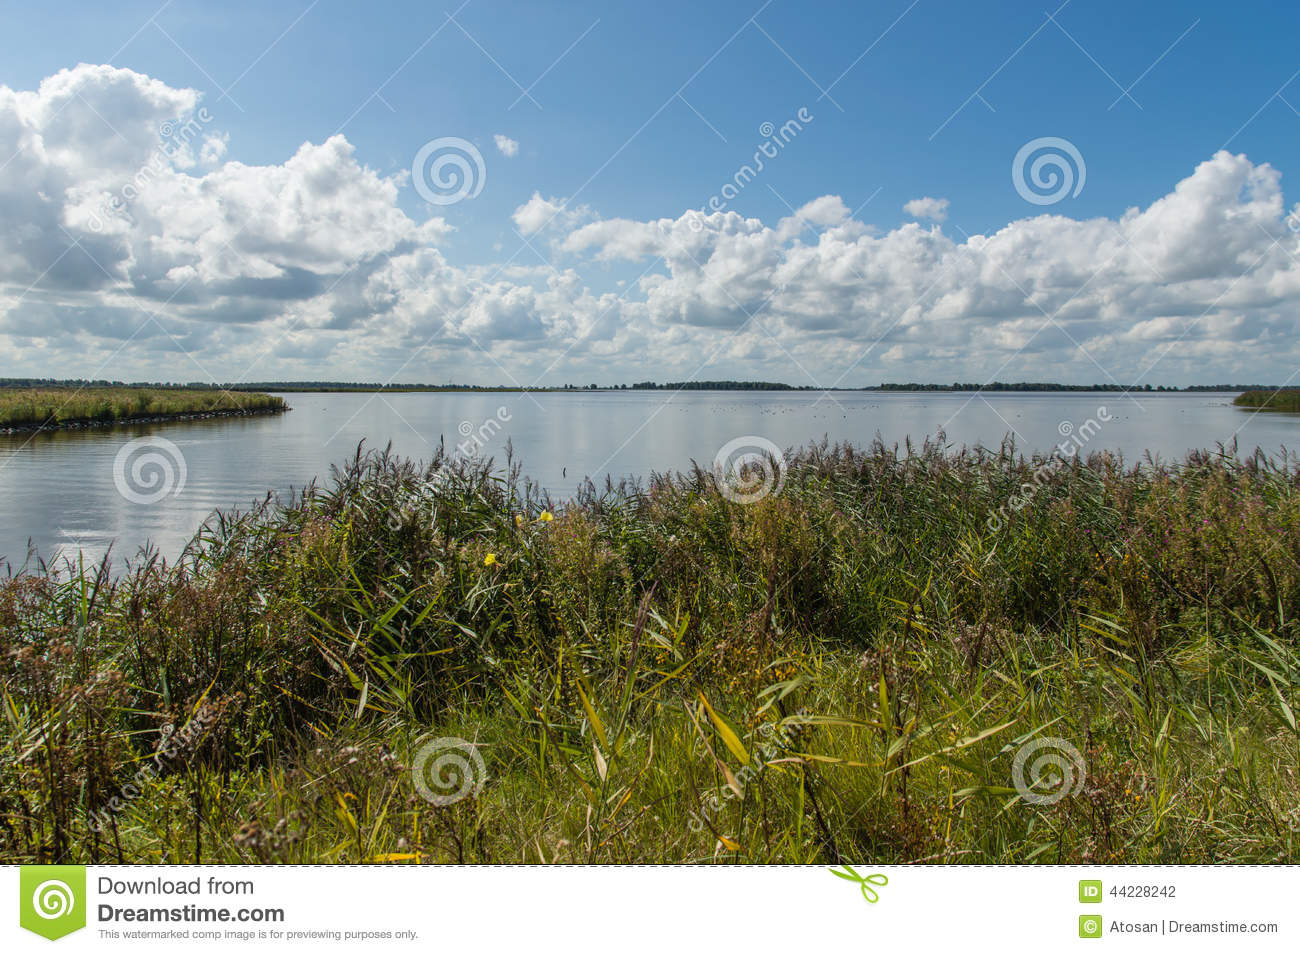 Lauwersmeer National Park